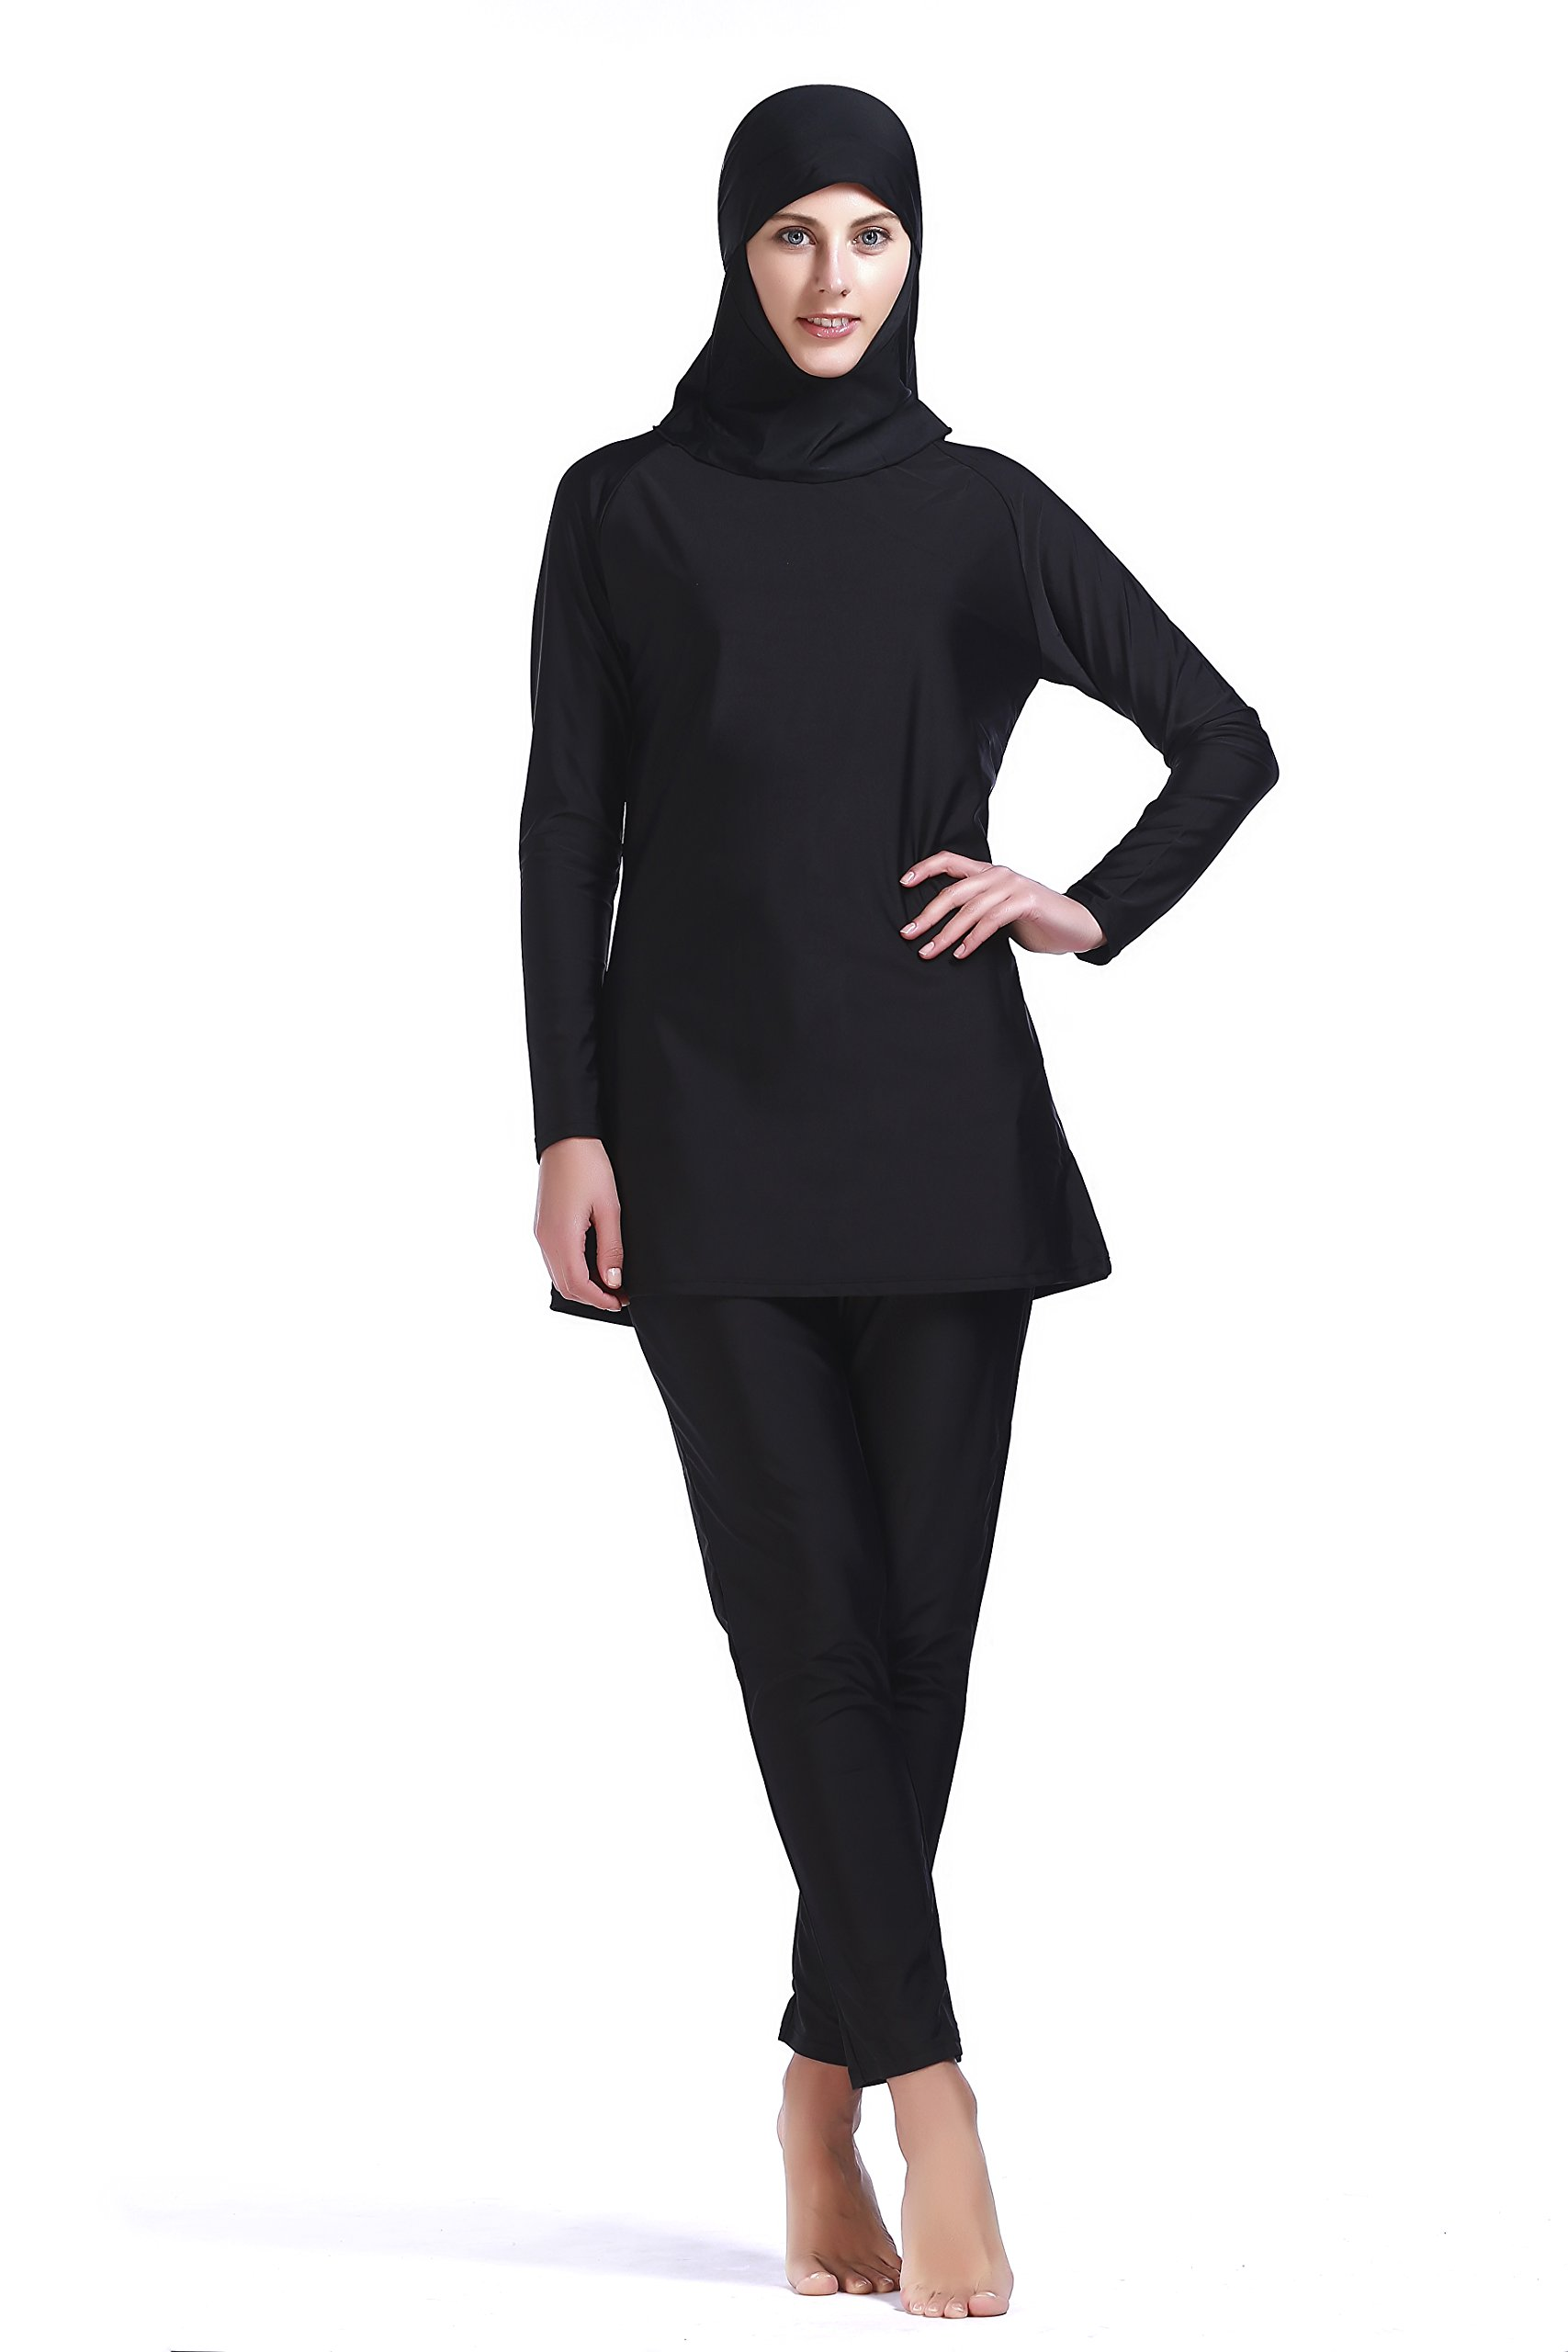 Muslim Swimwear Women Islamic Hijab Modesty Full Cover Modest Swimsuit MZ Garment (M, MS32)